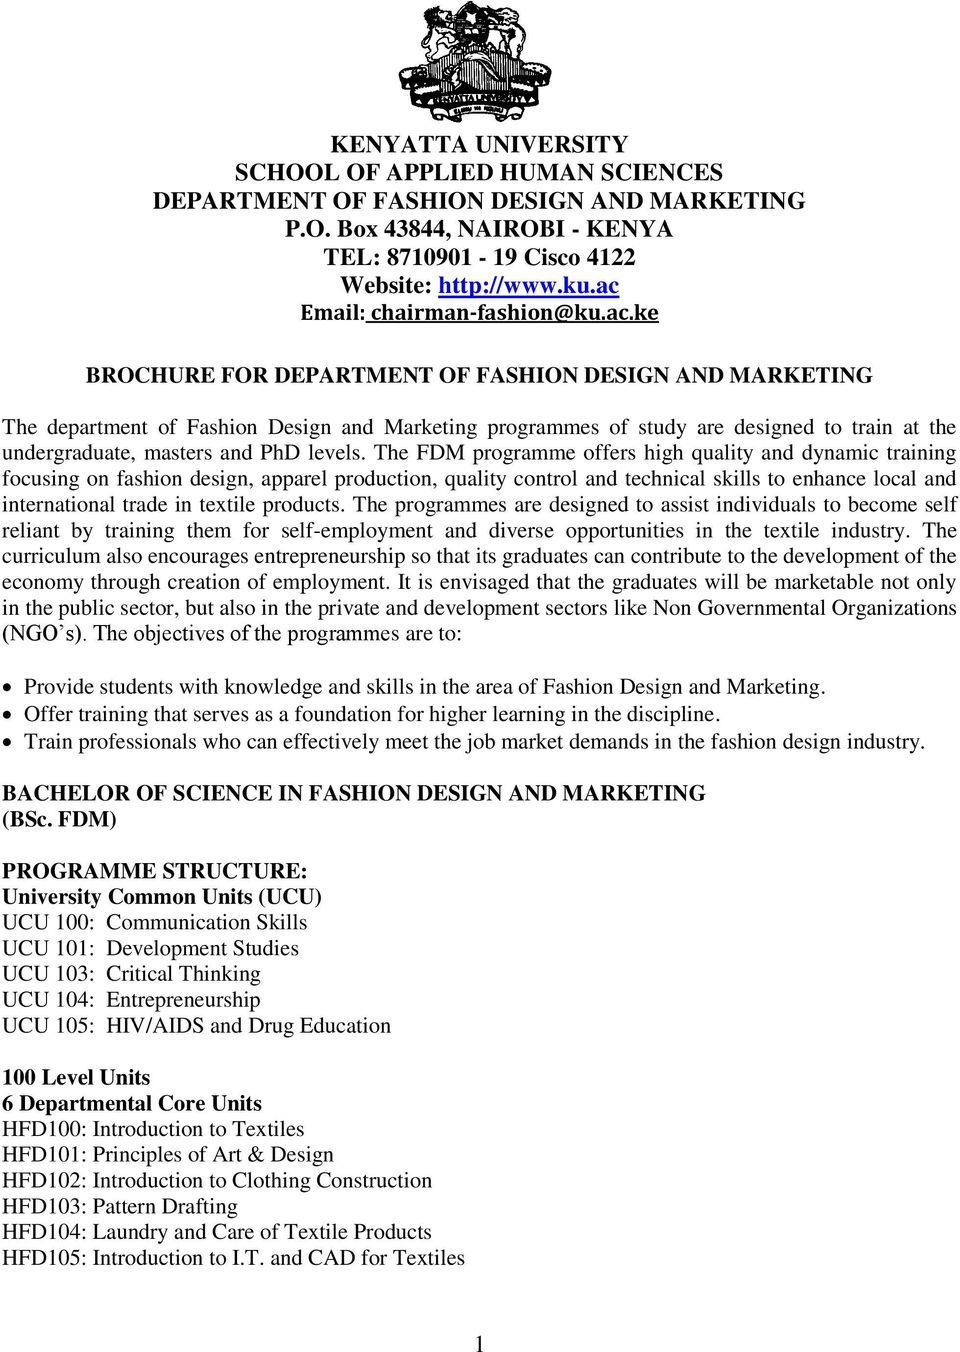 Brochure For Department Of Fashion Design And Marketing Pdf Free Download